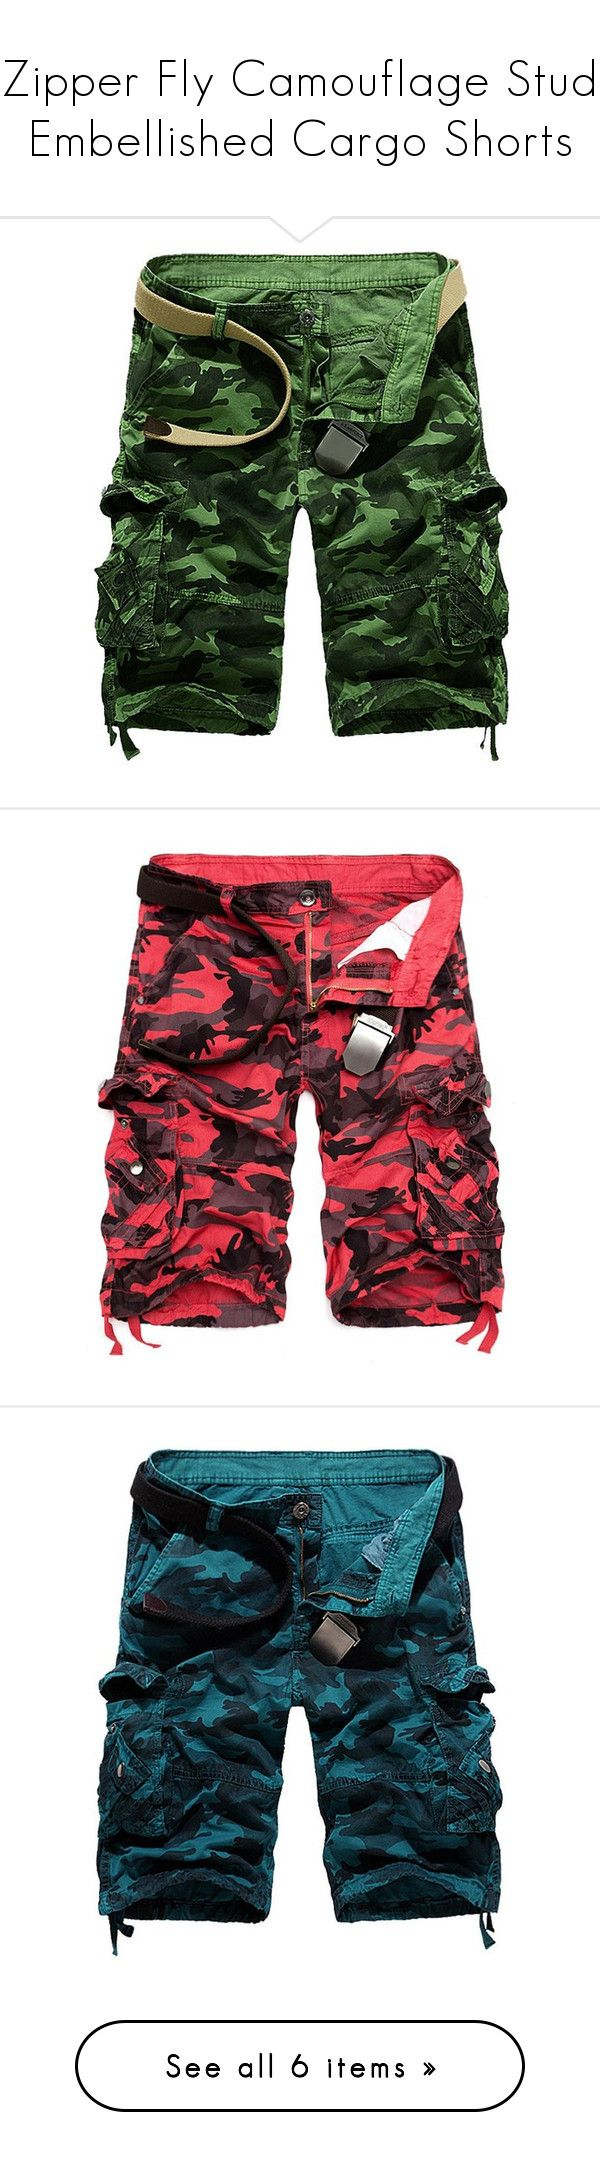 """""""Zipper Fly Camouflage Stud Embellished Cargo Shorts"""" by rosegal-official ❤ liked on Polyvore featuring men's fashion, men's clothing, men's shorts, mens camo shorts, camouflage mens shorts, mens camo cargo shorts, mens cargo shorts, mens zipper pocket shorts and mens camouflage cargo shorts"""